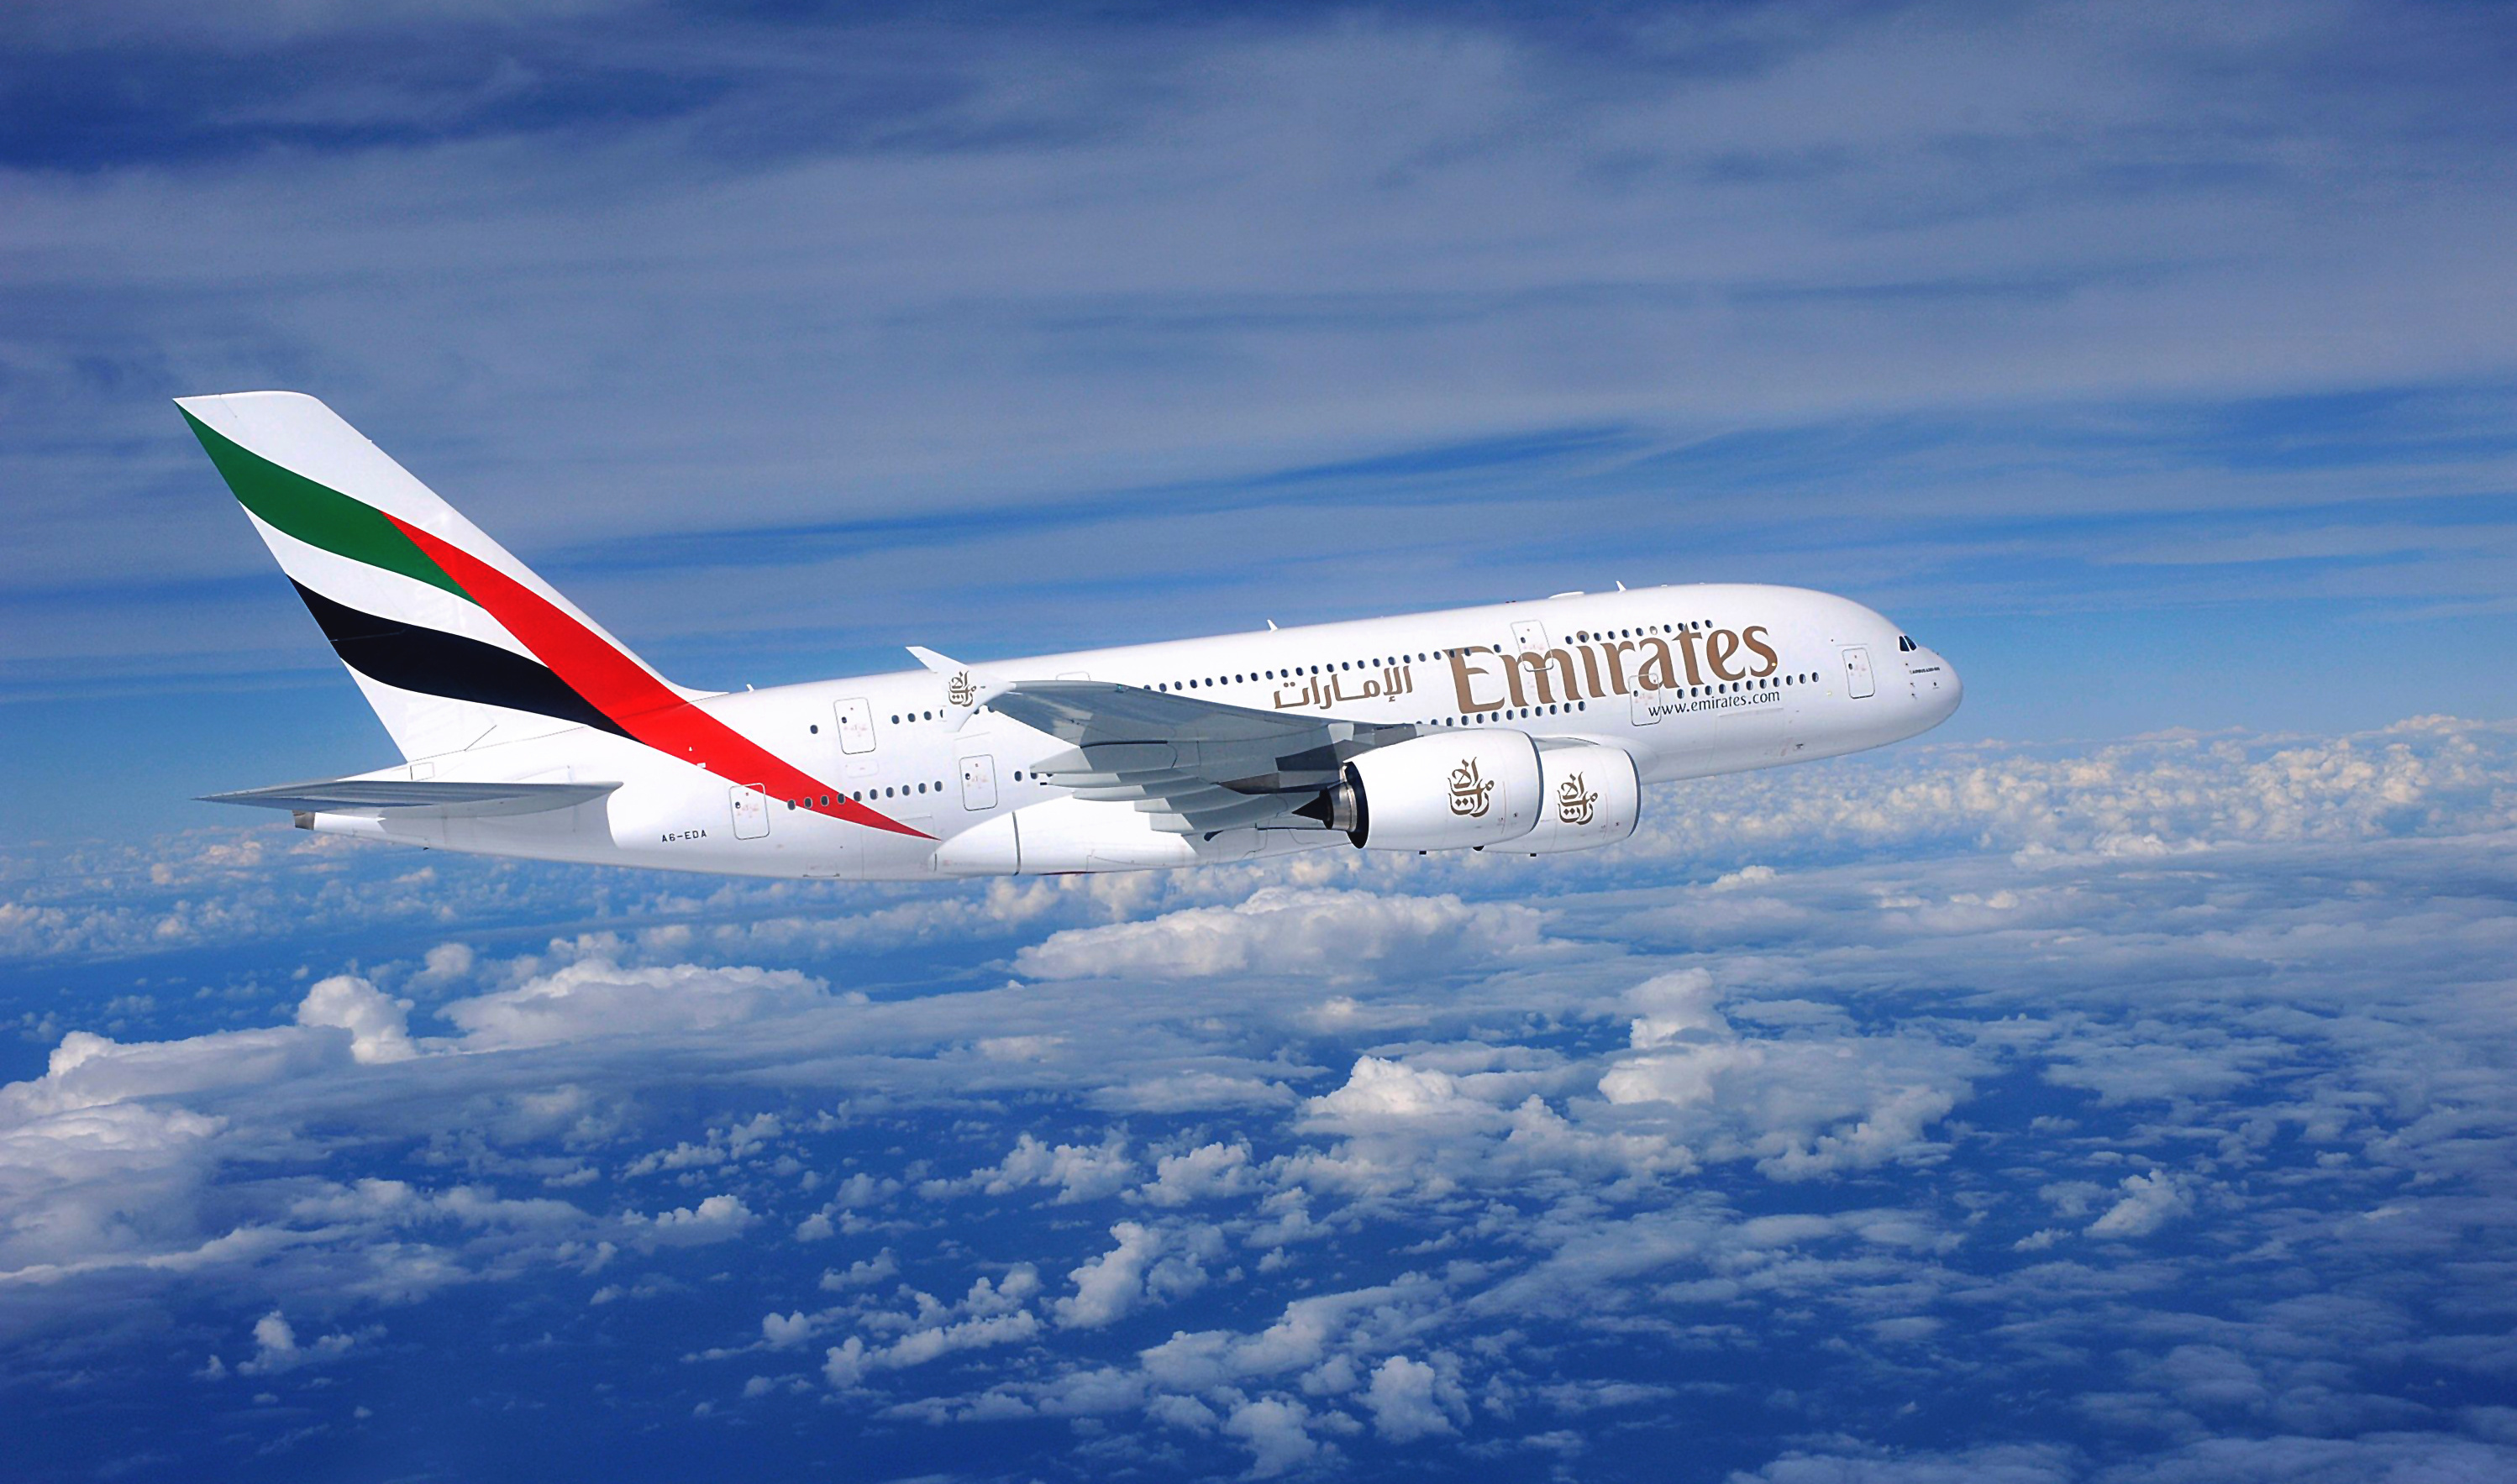 Emirates airline plane airbus airliner a380 wallpaper | 2996x1767 ...: www.wallpaperup.com/147087/emirates_airline_plane_airbus_airliner...